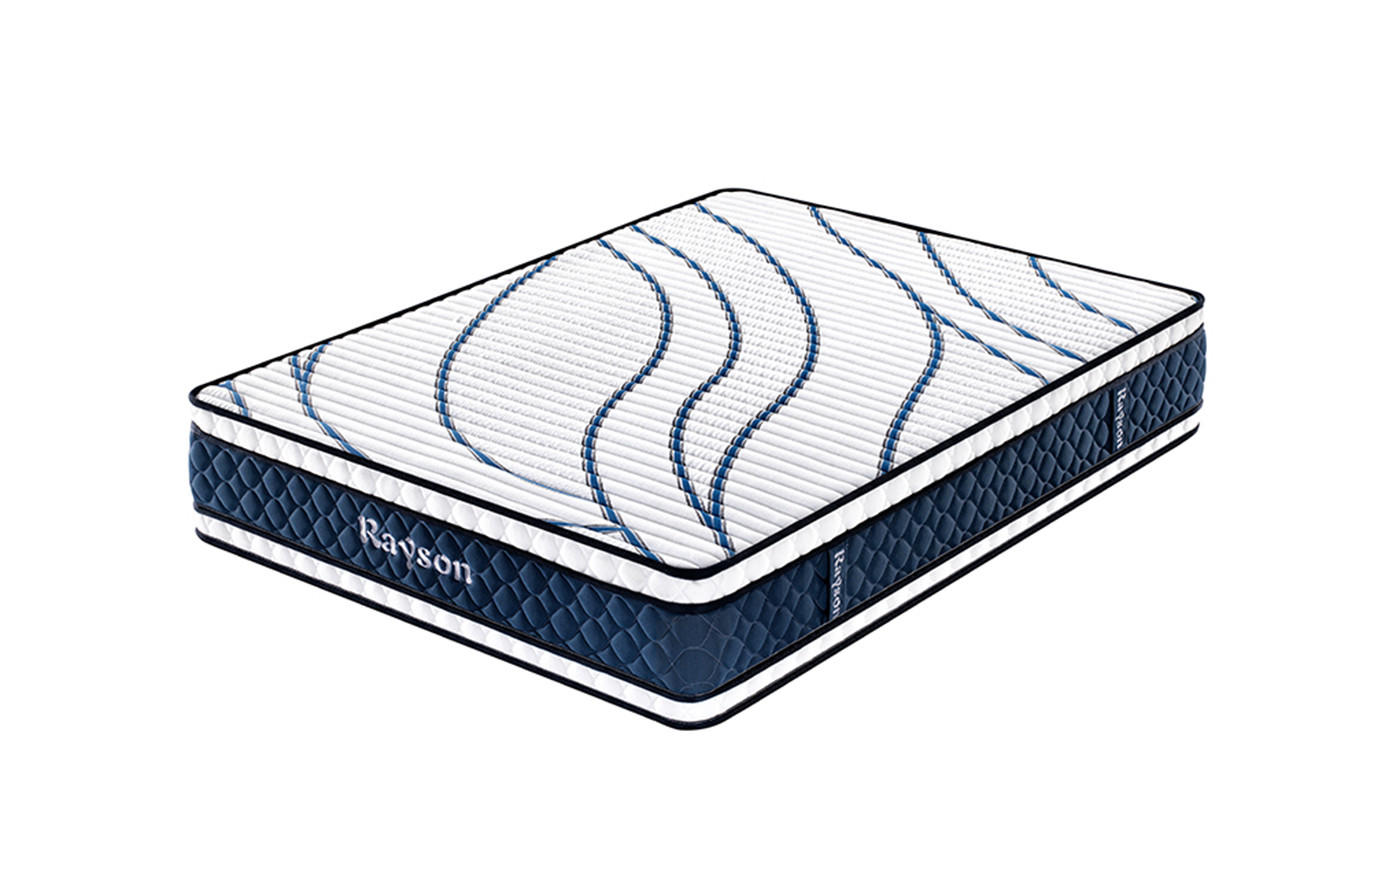 Synwin 36cm height hotel bed mattress innerspring at discount